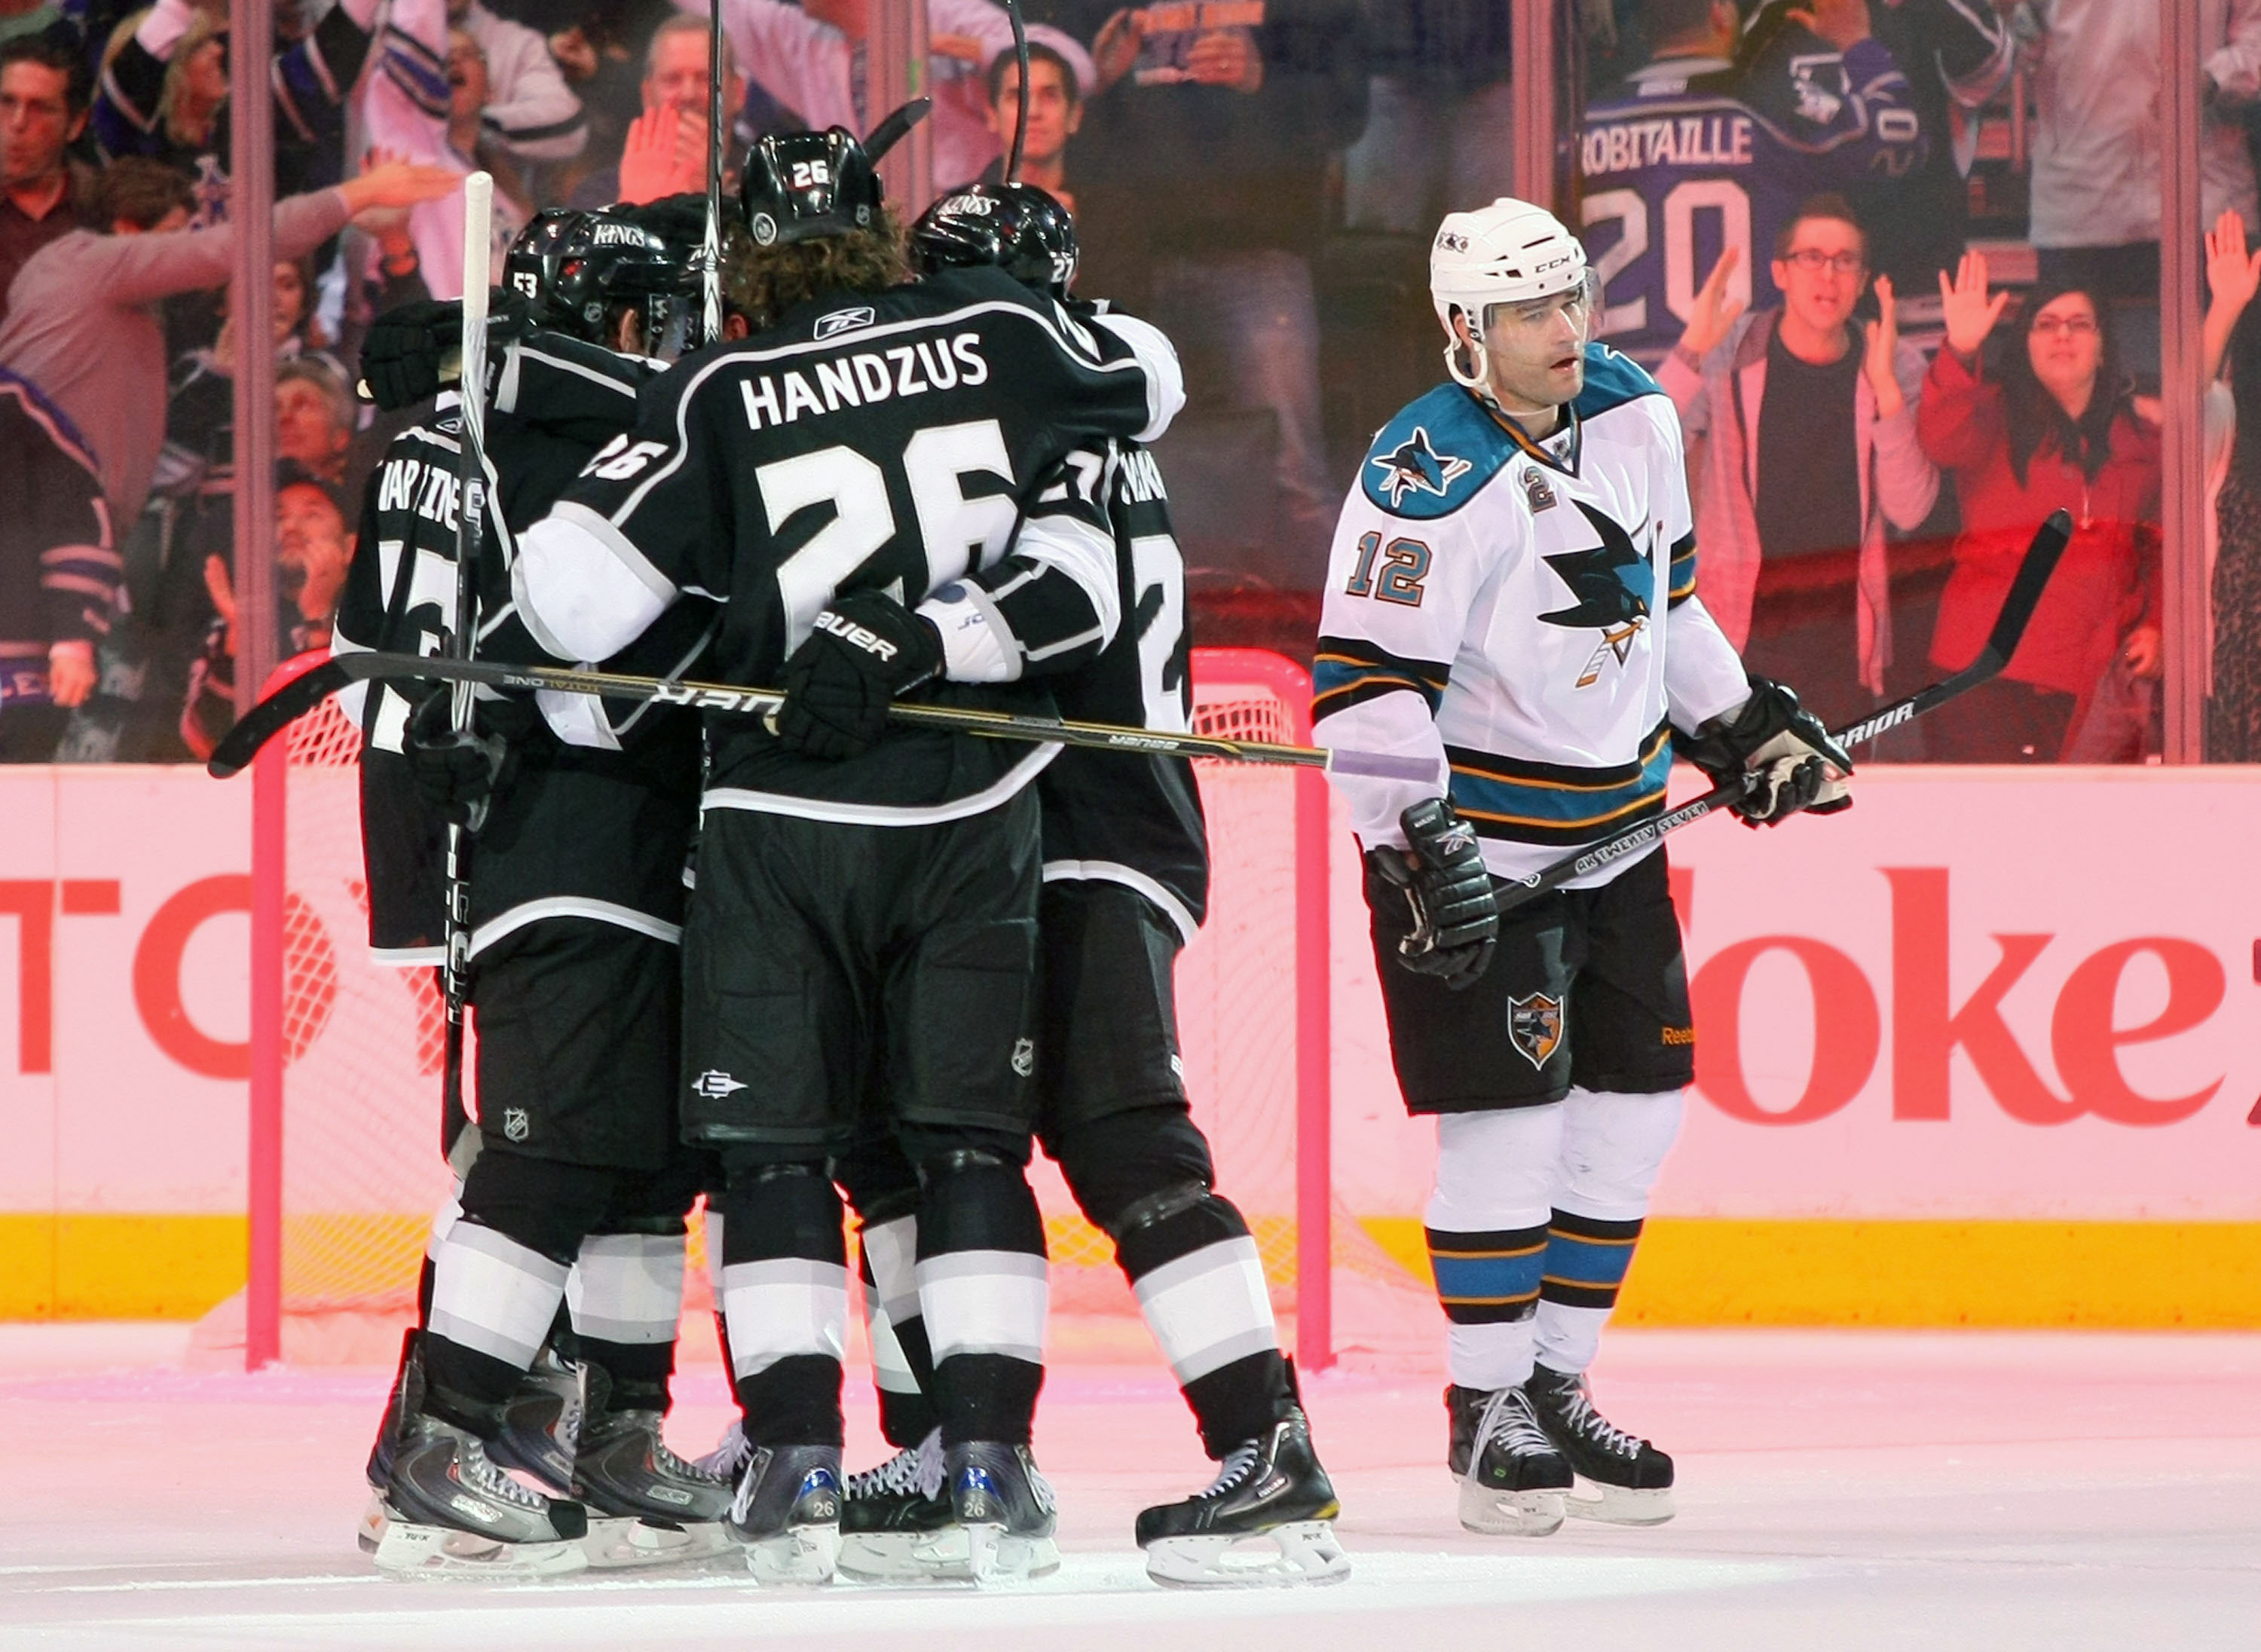 LOS ANGELES, CA - MARCH 24:  Alec Martinez #53, Michal Handzus #26, Dustin Brown #23 and Alexei Ponikarovsky #27 of the Los Angeles Kings celebrate Brown's goal in the third period as Patrick Marleau #12 of the San Jose Sharks skates to the bench during t